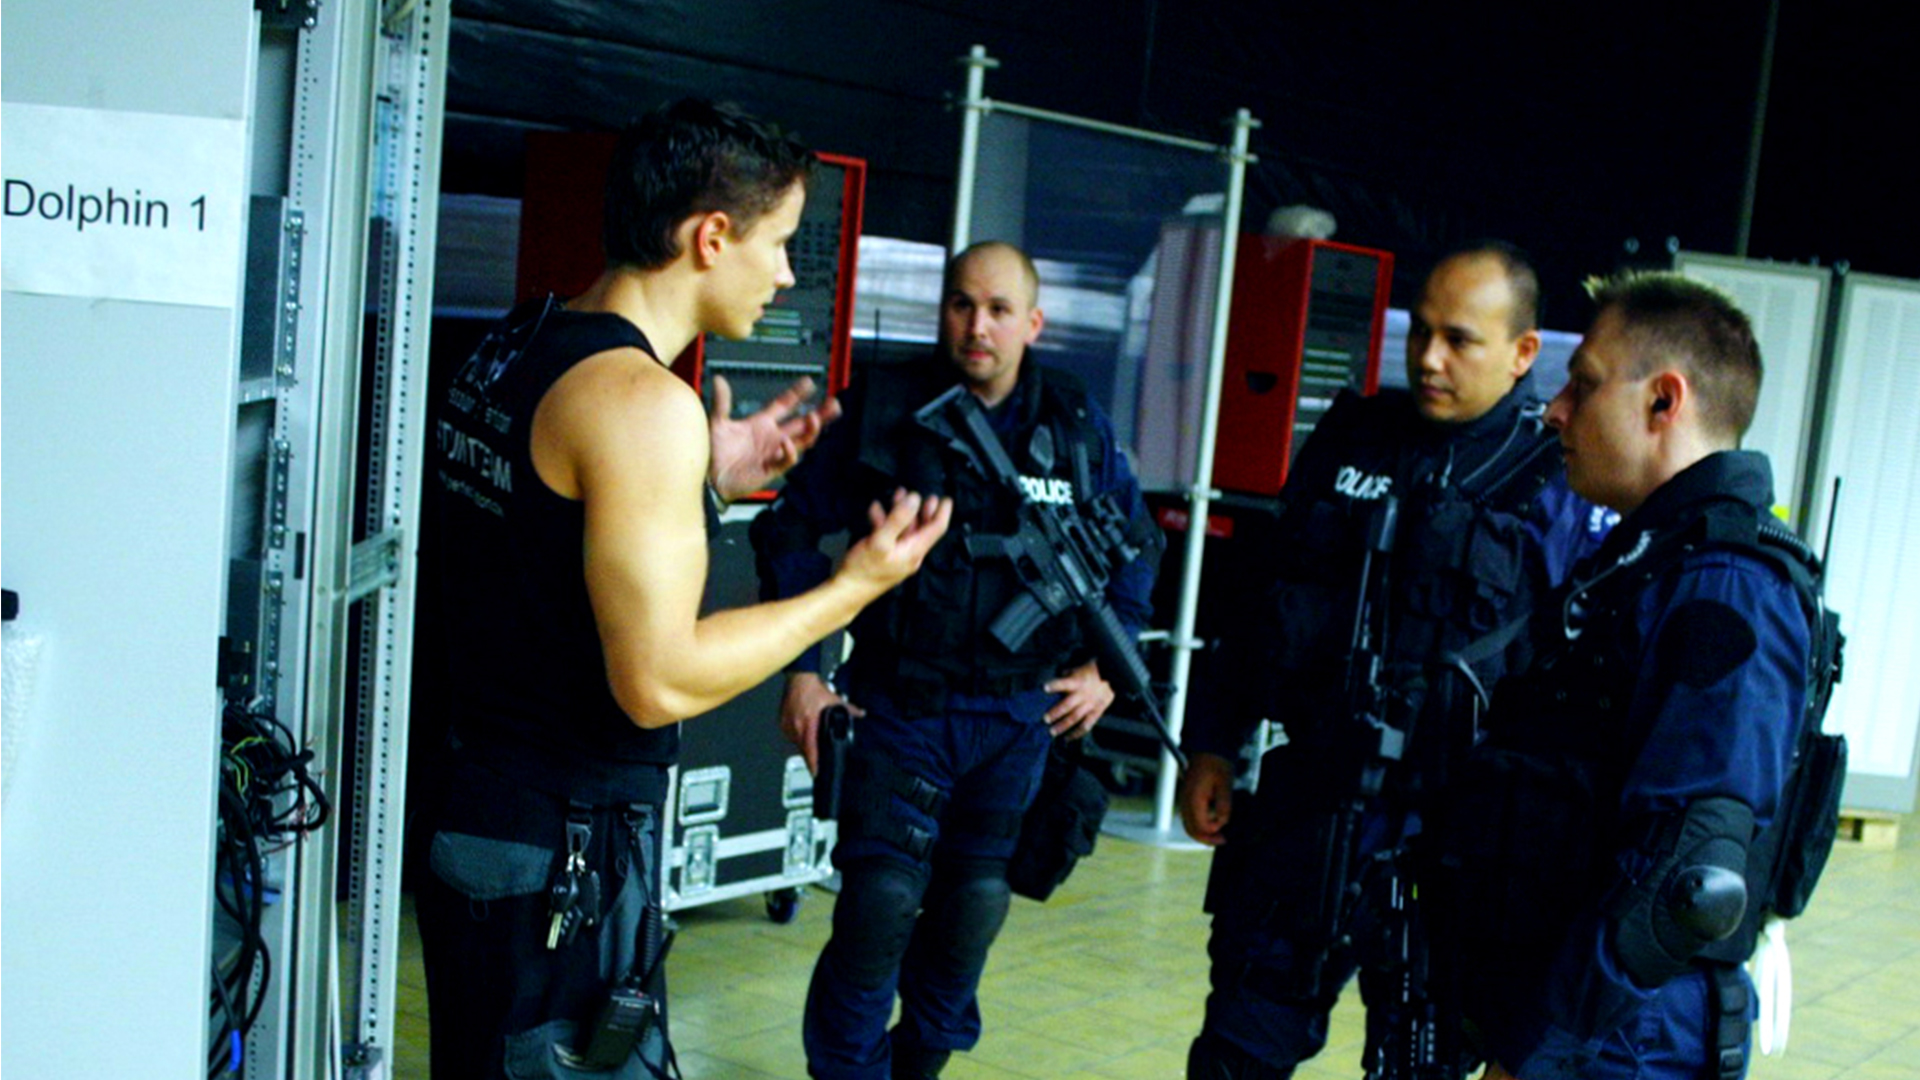 martin goeres, mg action, action training für Schauspieler, actor training, weapon training